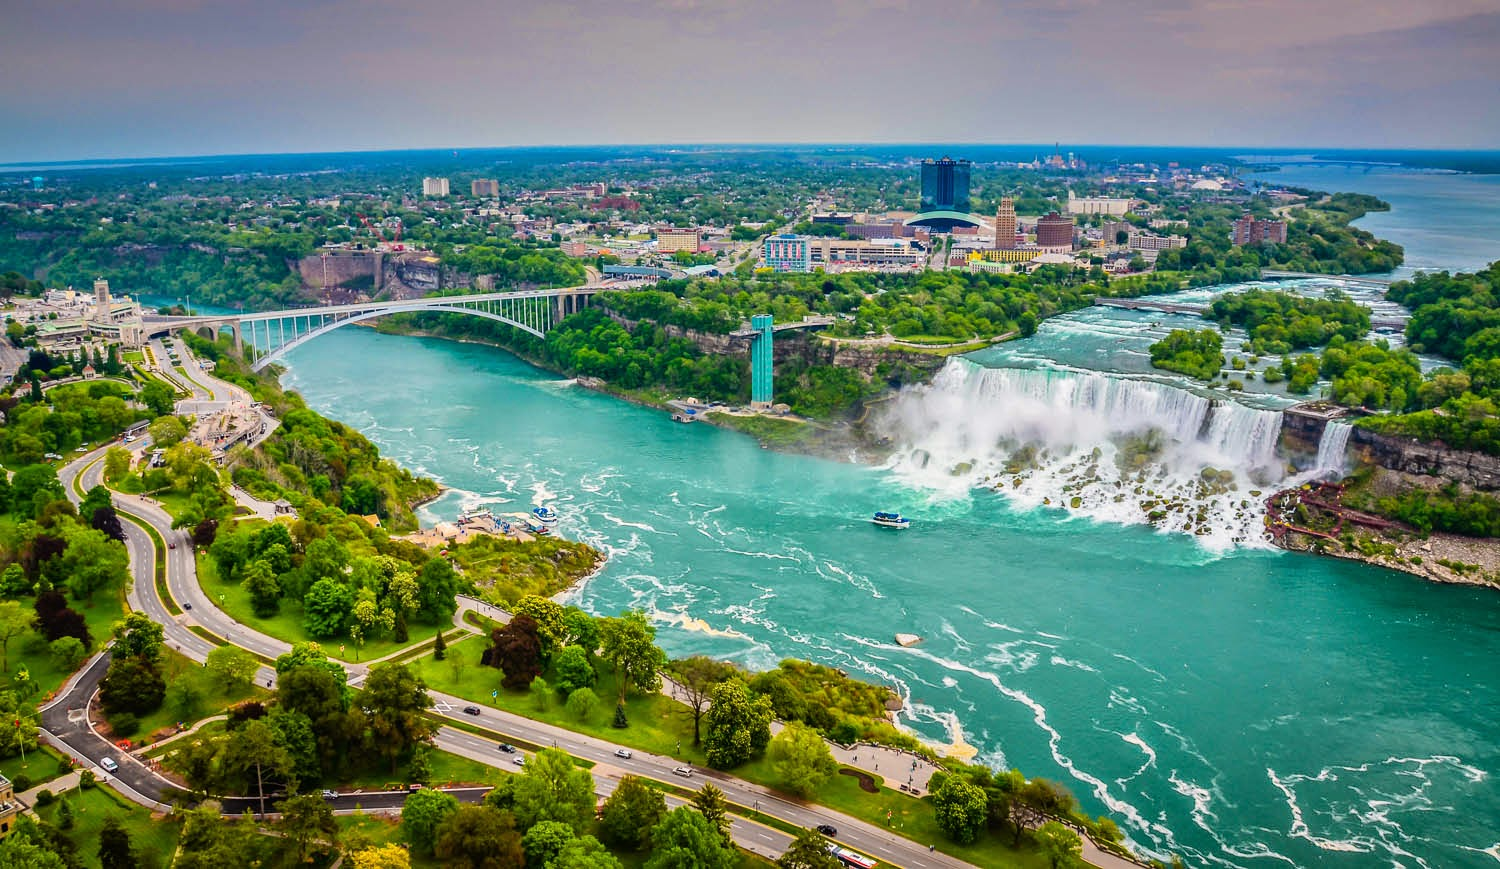 The-most-beautiful-pictures-of-Niagara-falls-9